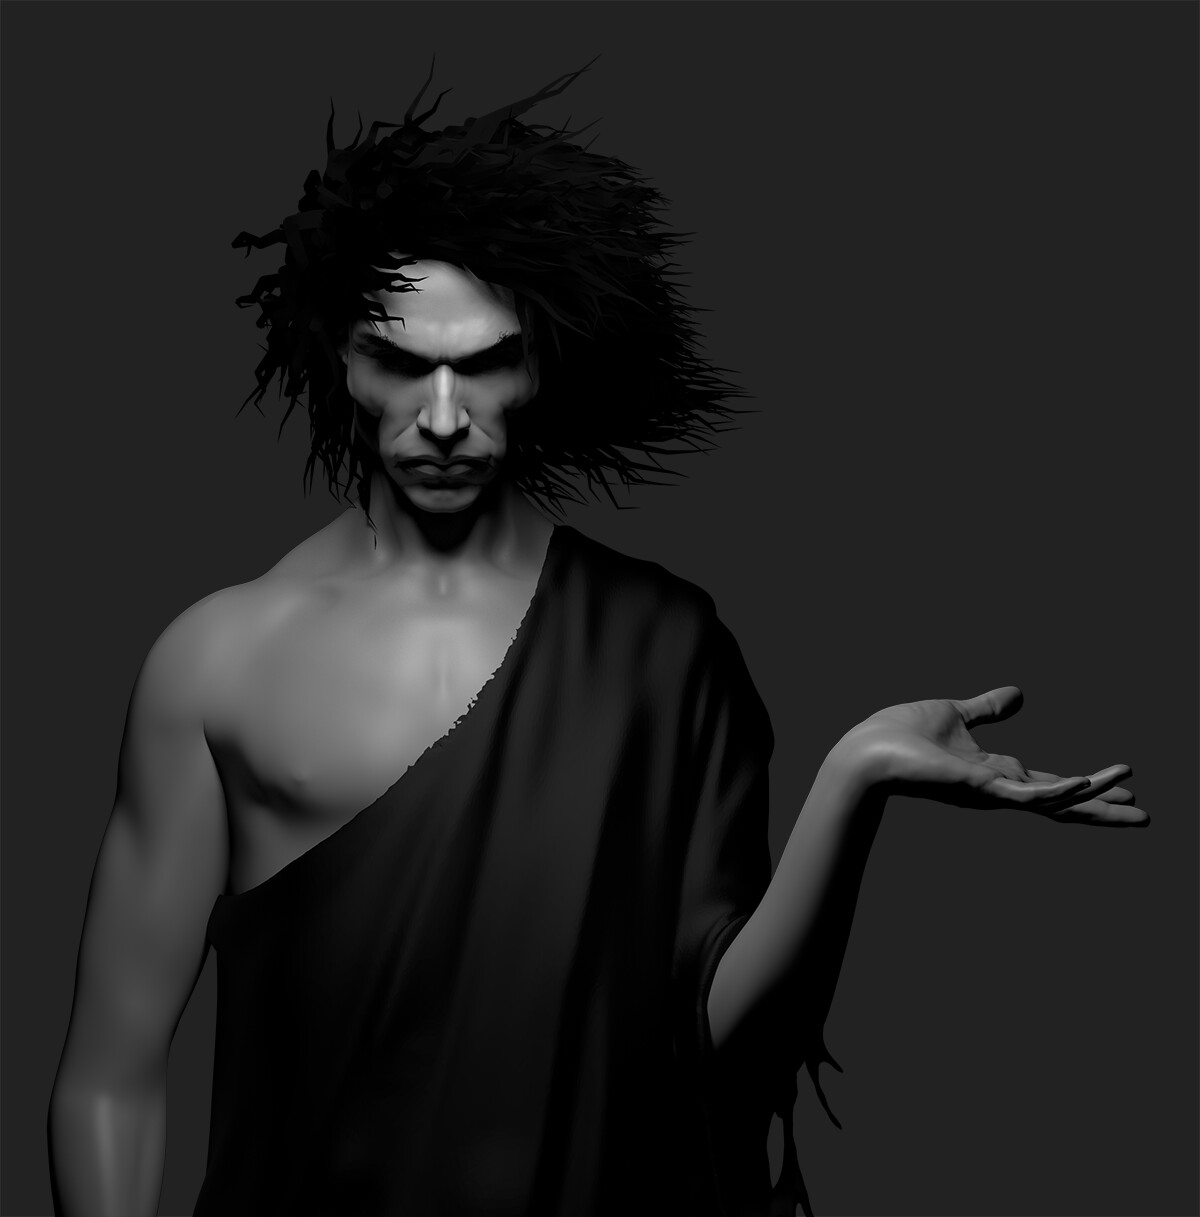 Here's the Redshift renders I created of my Sandman model. The final artwork was created by painting over the model in photoshop.